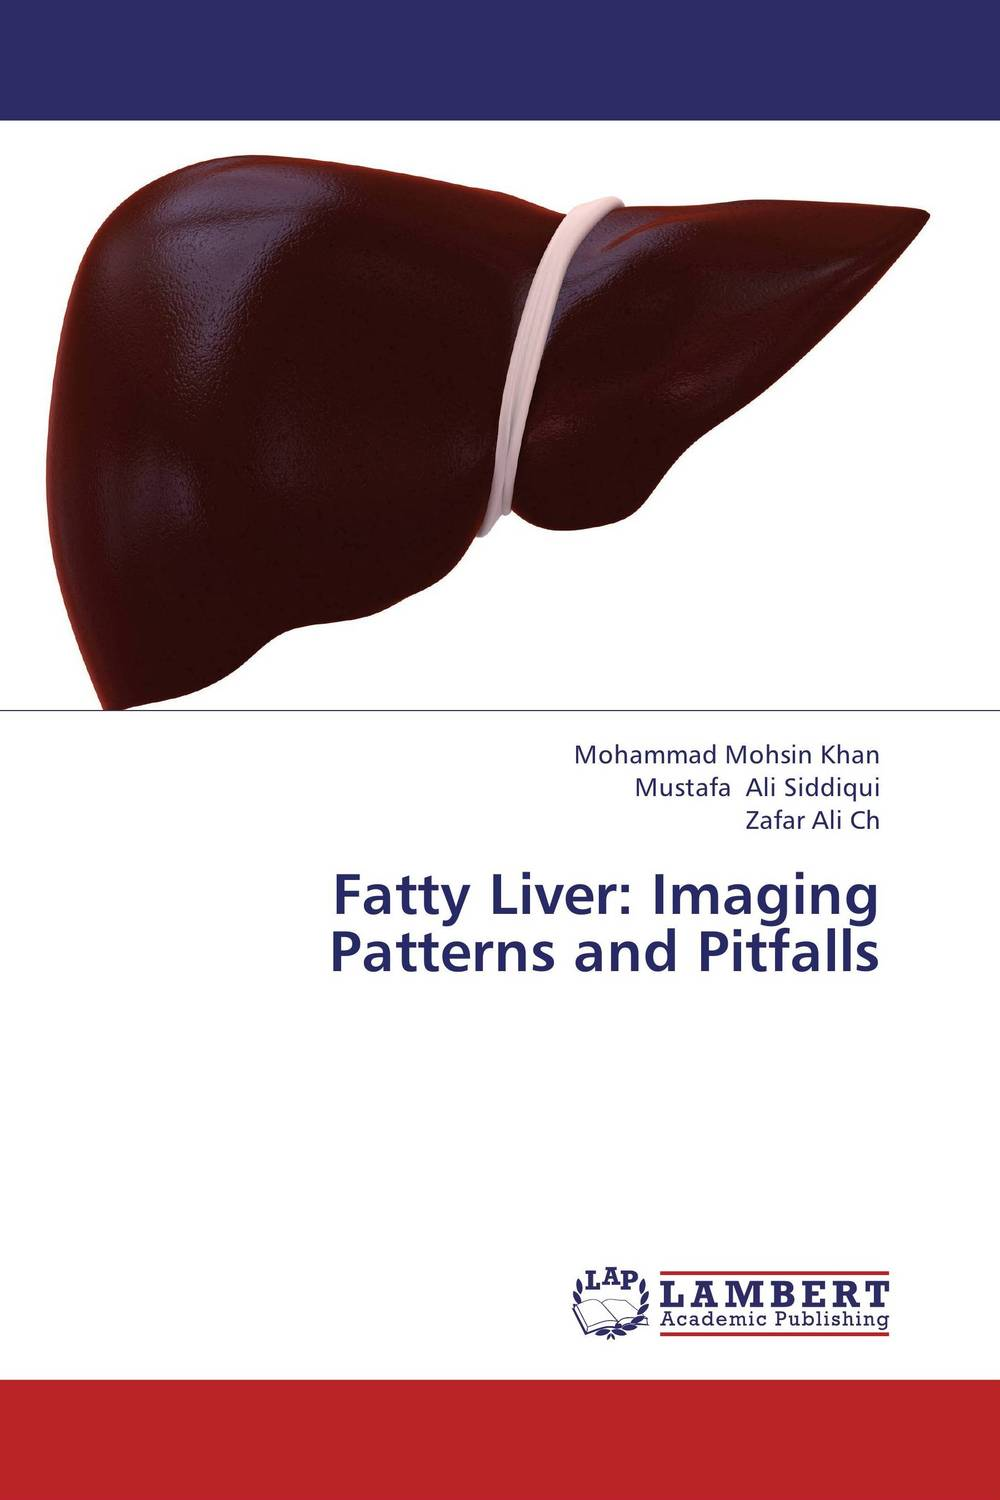 Fatty Liver: Imaging Patterns and Pitfalls fatty liver imaging patterns and pitfalls